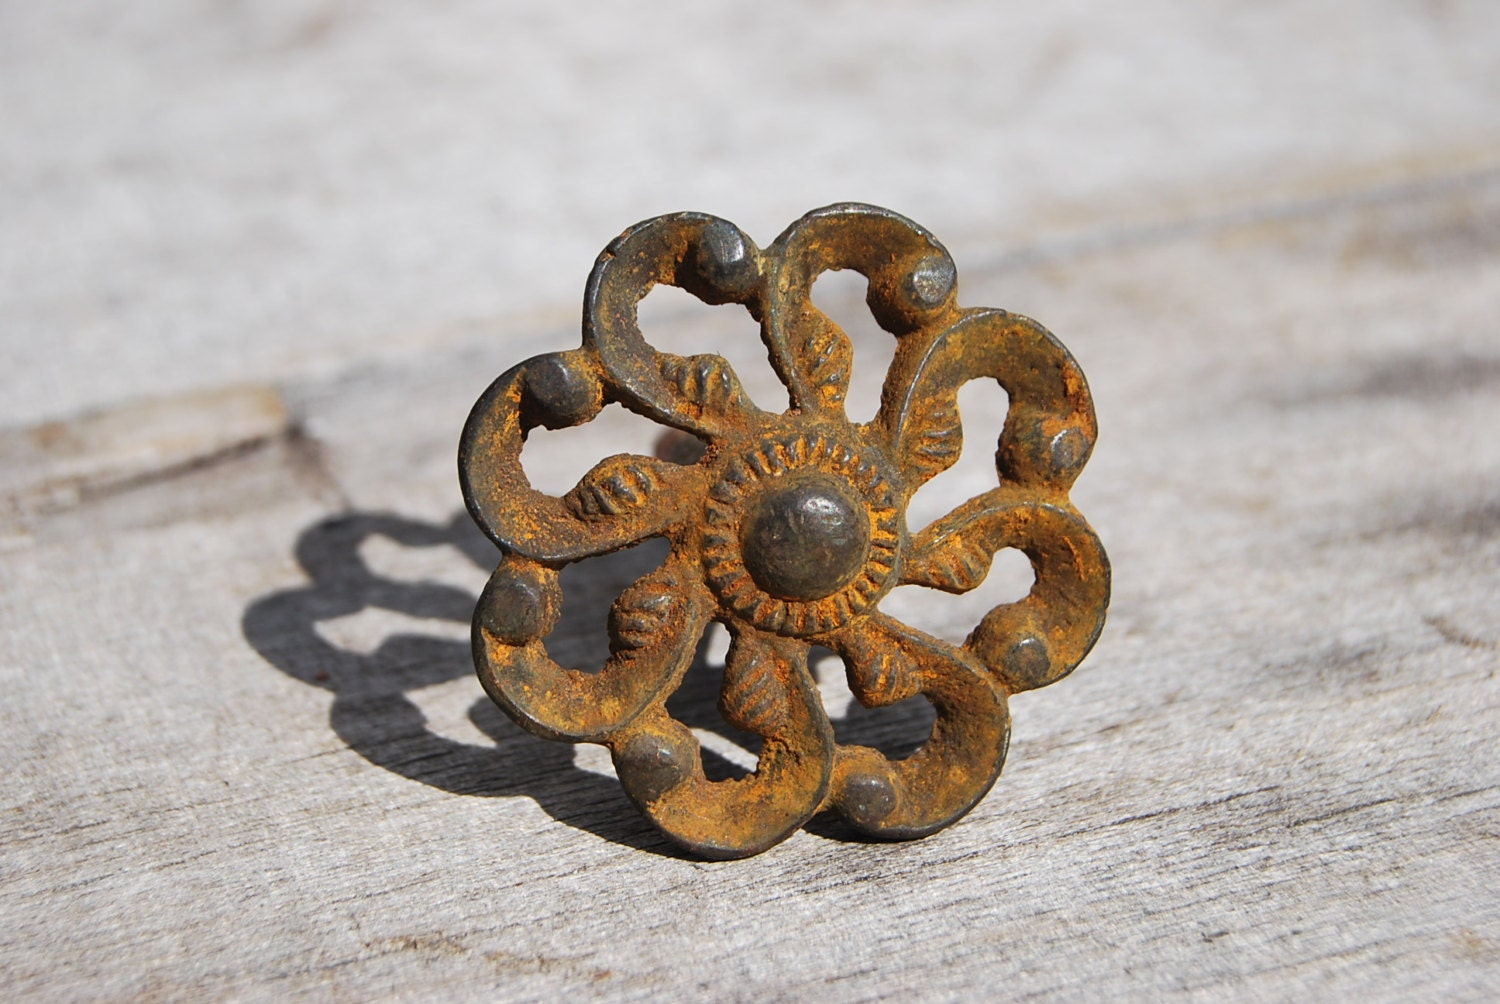 Rustic Cast Iron Flower Drawer Pull - Psychedelphia